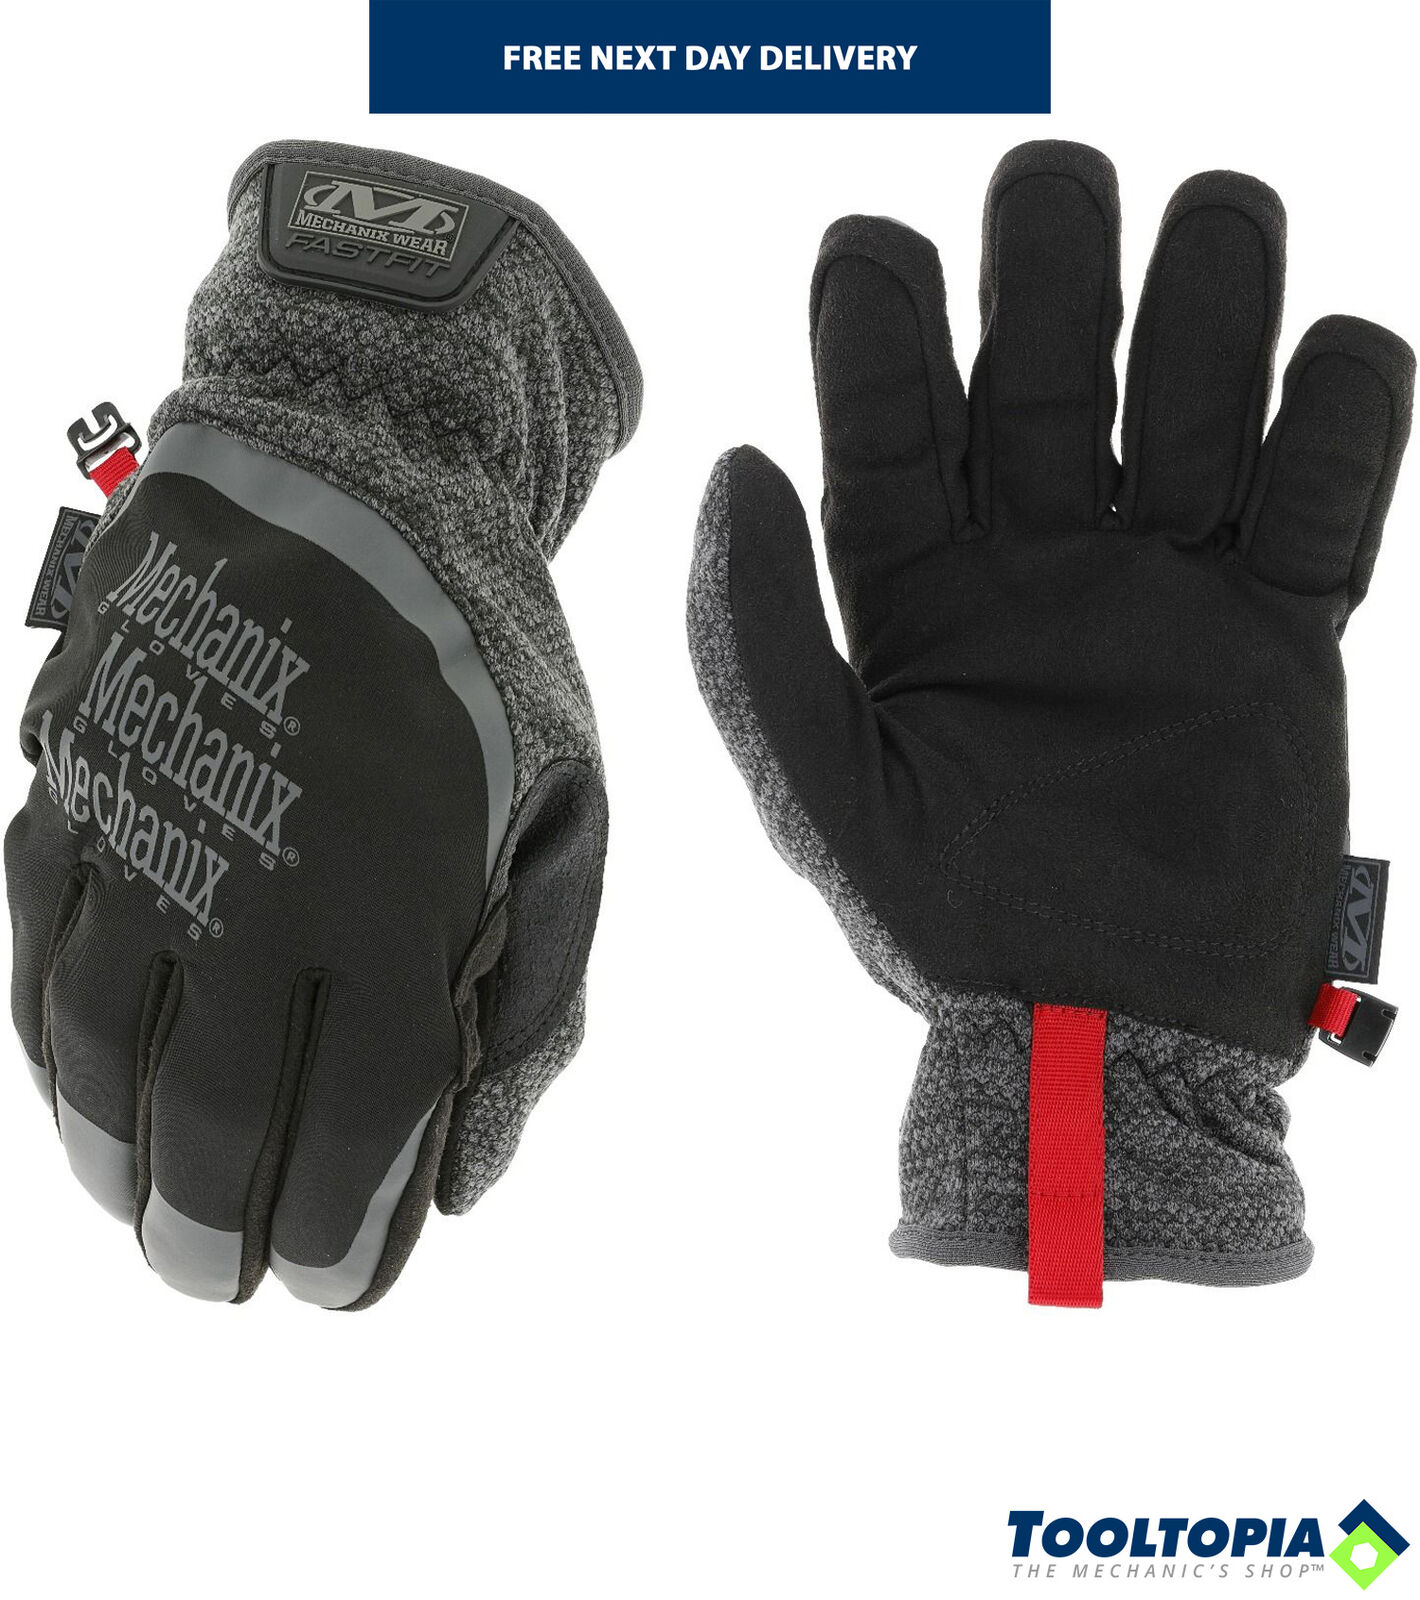 MECHANIX ColdWork Fastfit nsulated Cold Weather Gloves Large